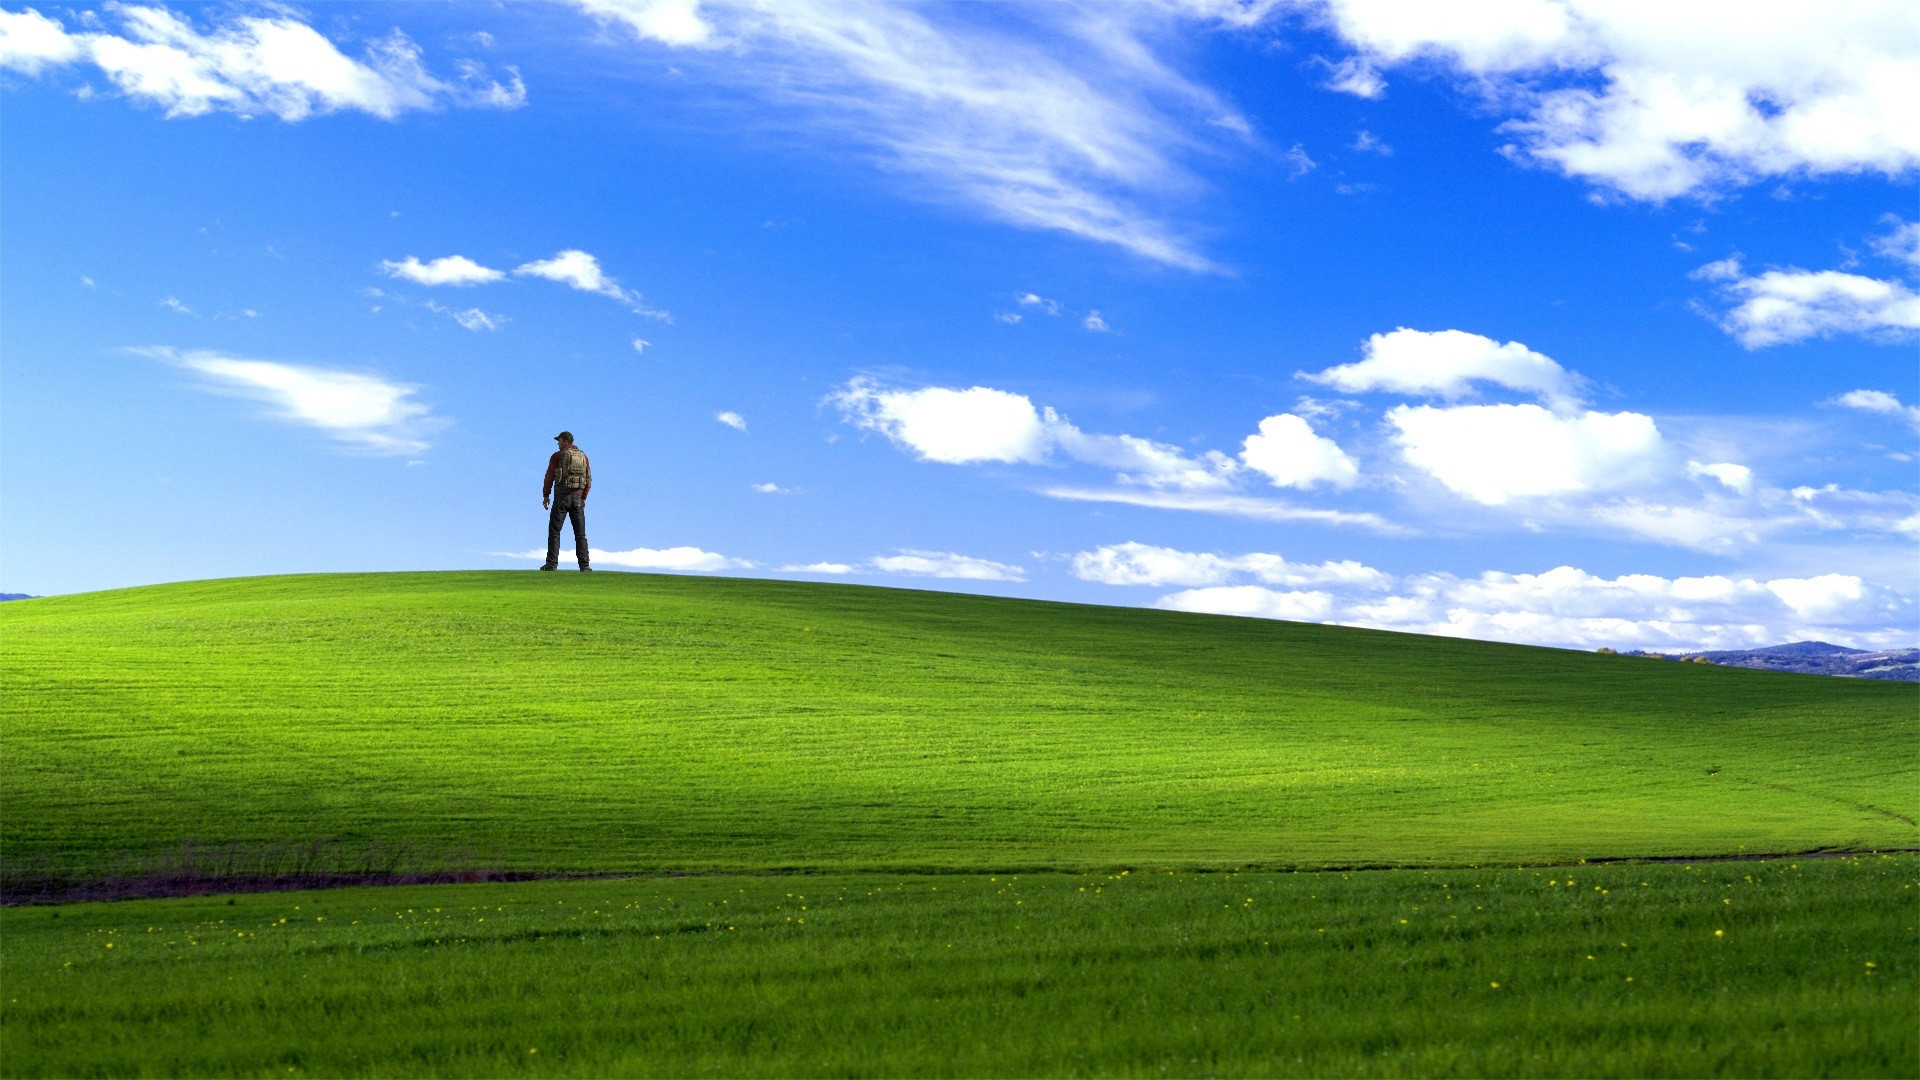 Classic Windows Xp Wallpaper